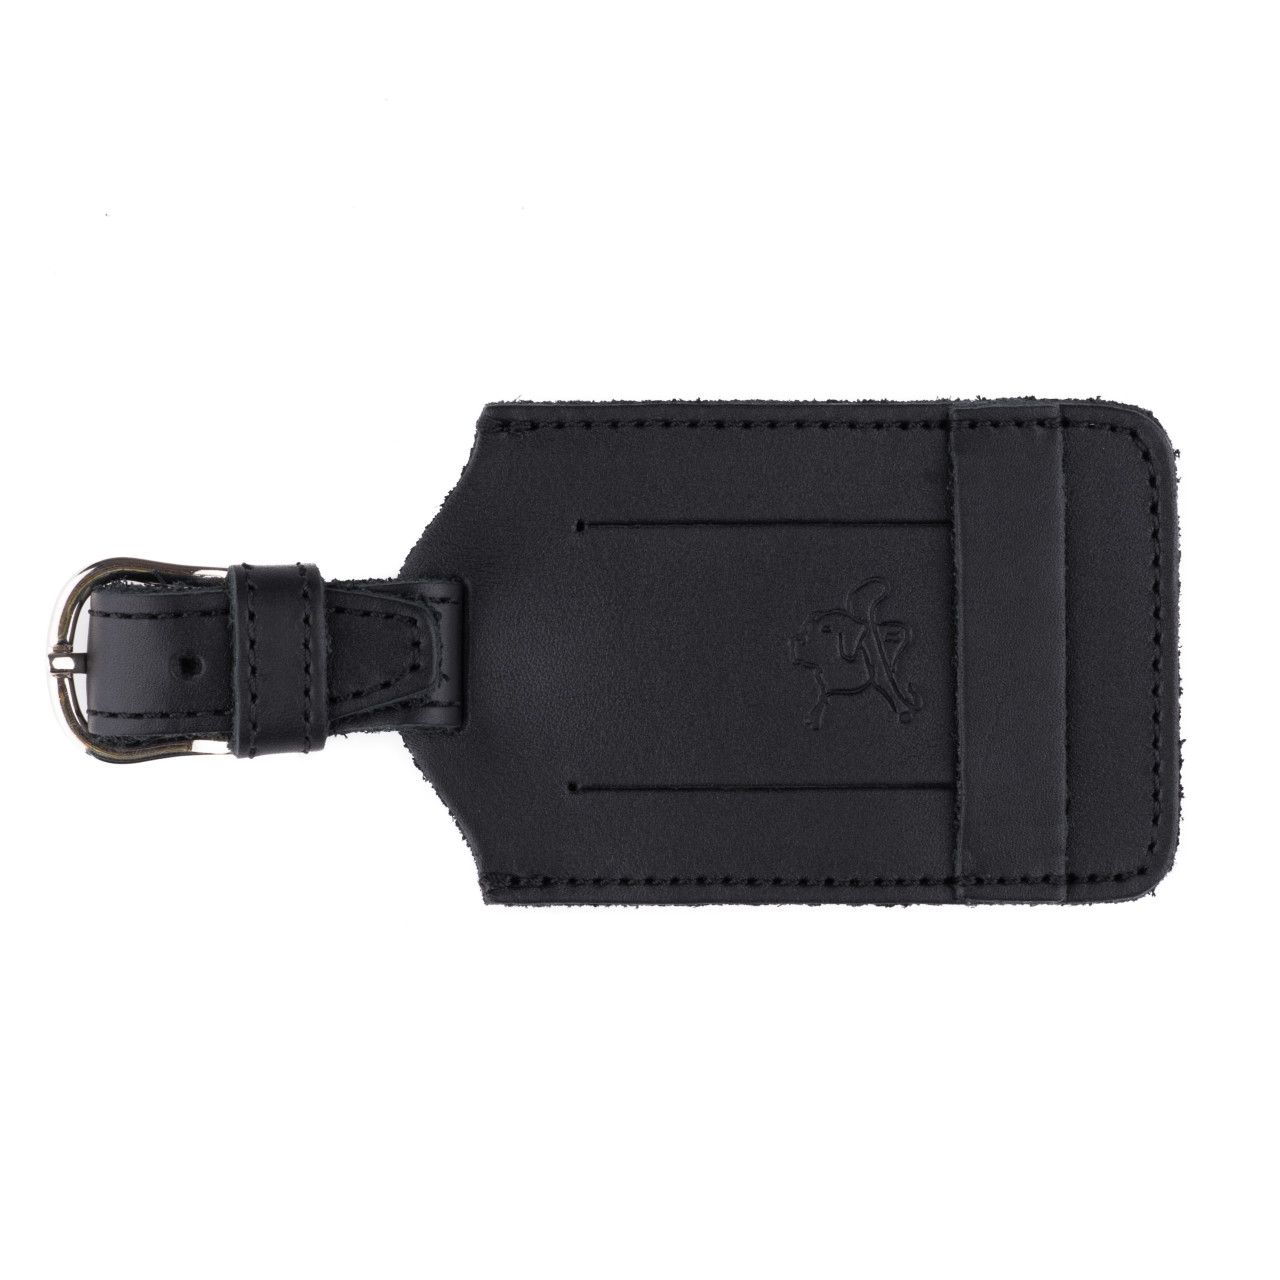 leather luggage tag in black leather